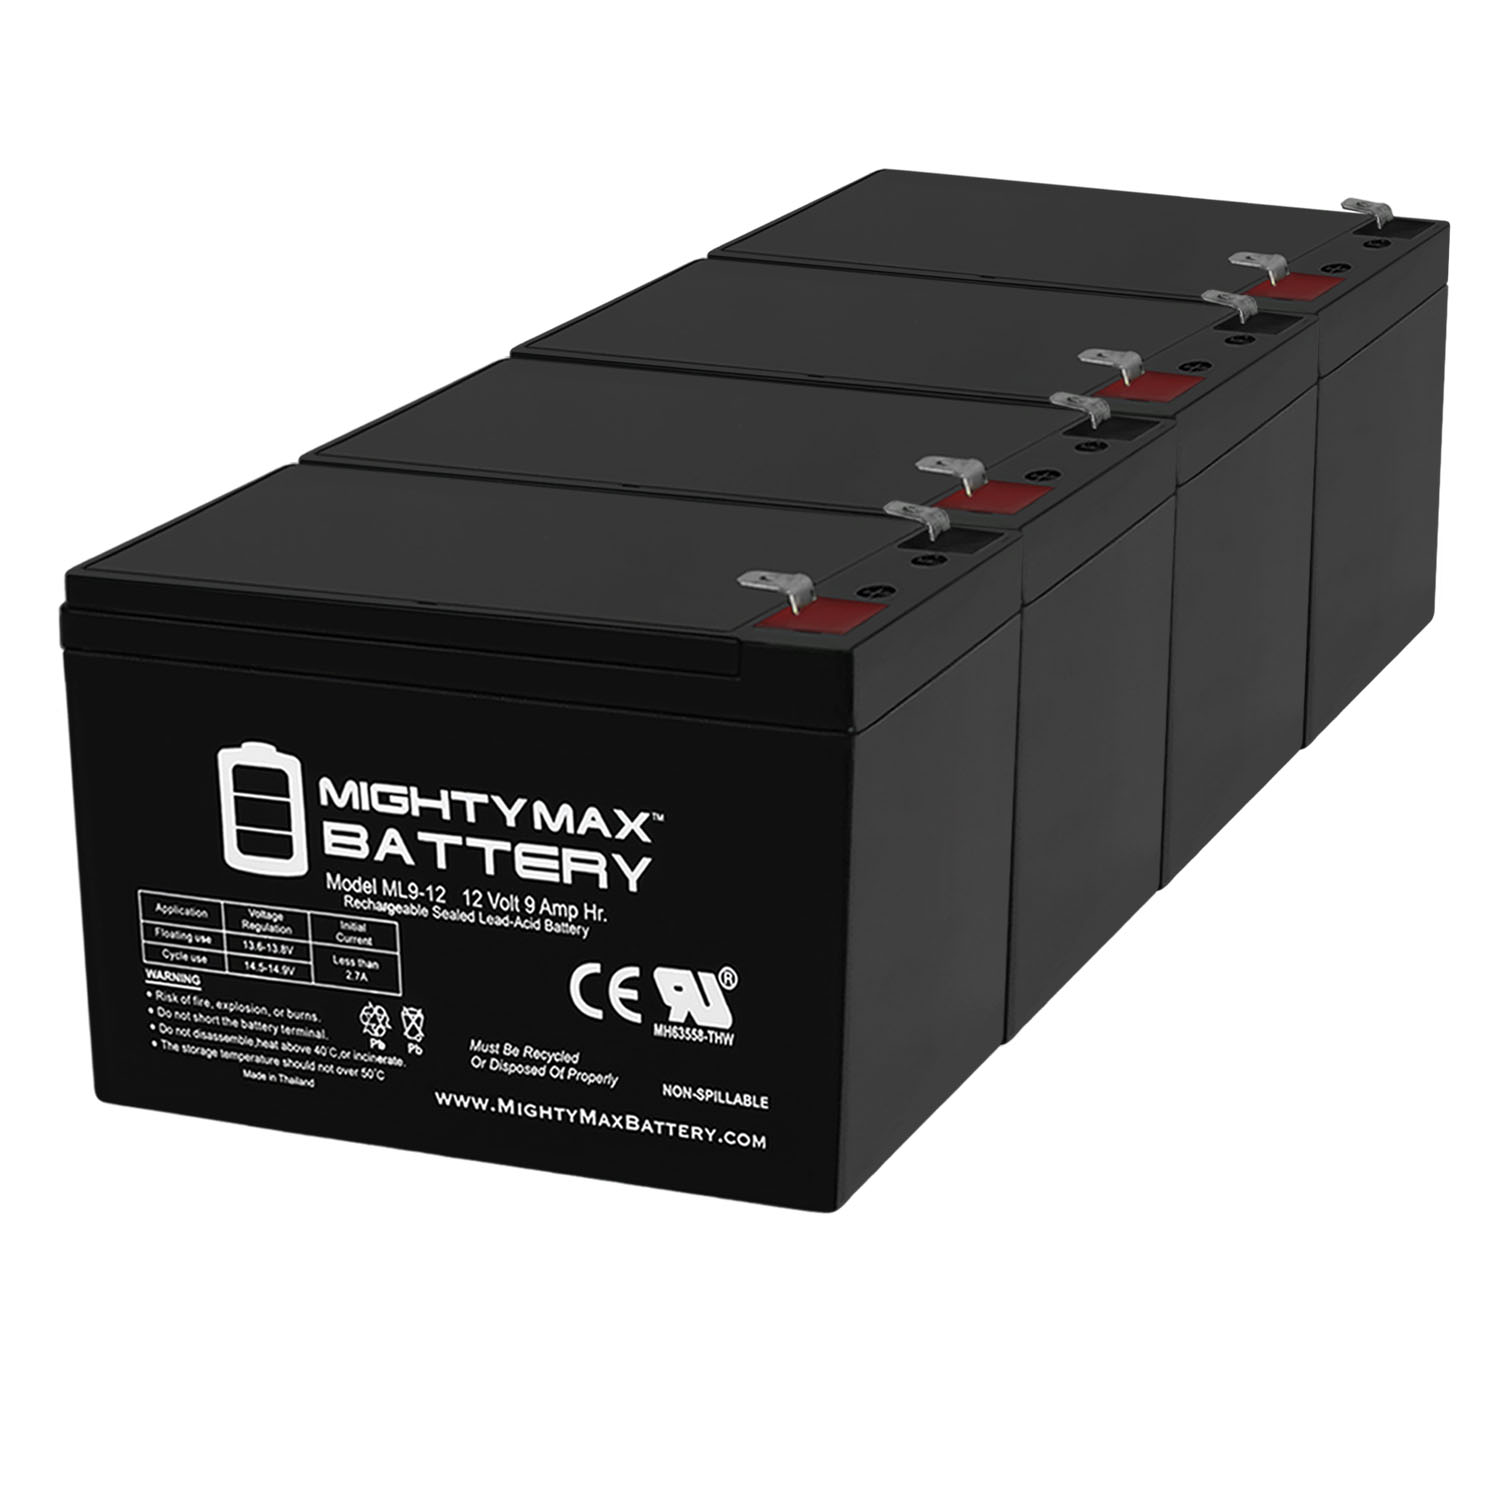 12V 9Ah Replacement Battery compatible with Panasonic LC-R127P1, LC-R127R2PG1 - 4 Pack